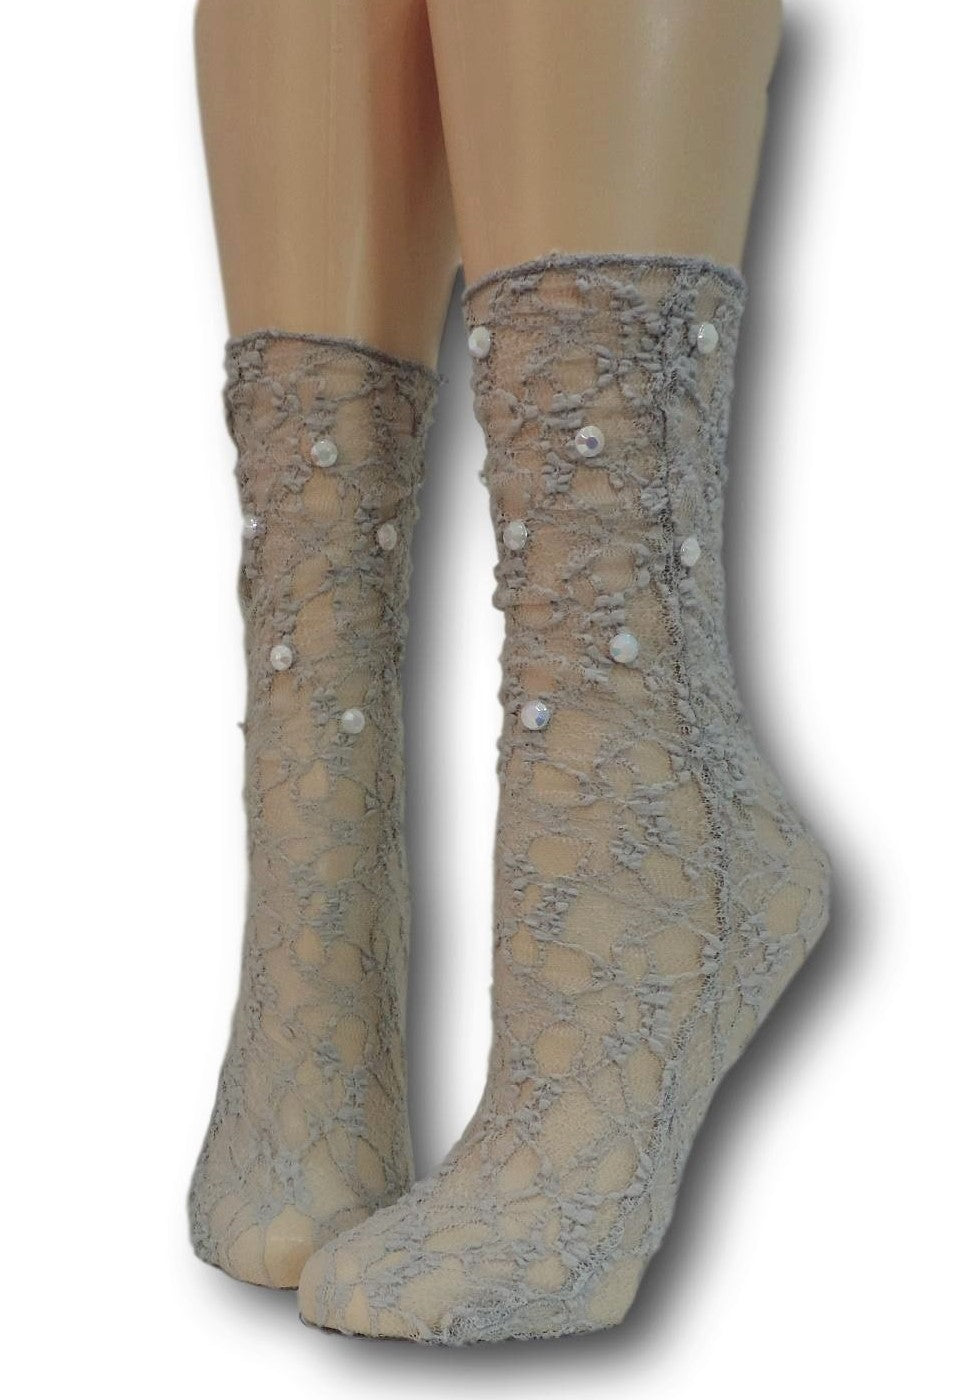 Smoke Grey Mesh Socks with beads